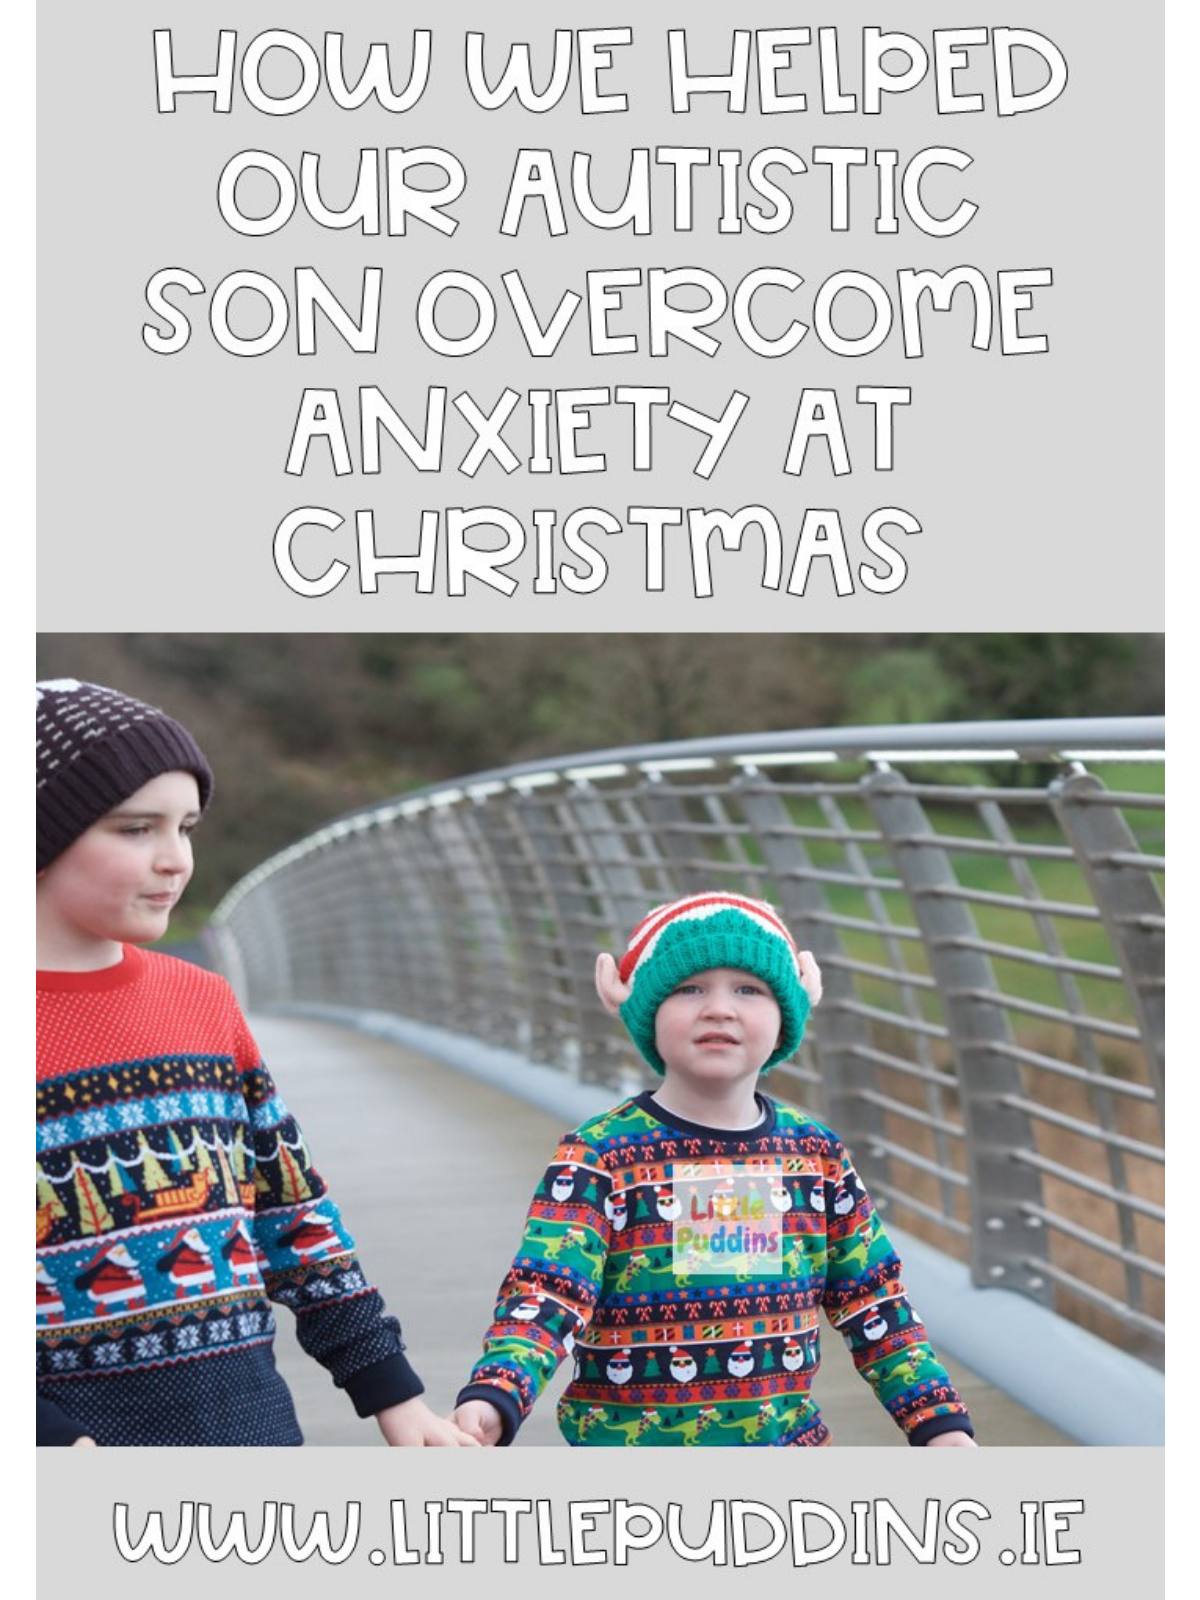 autism_anxiety_christmas